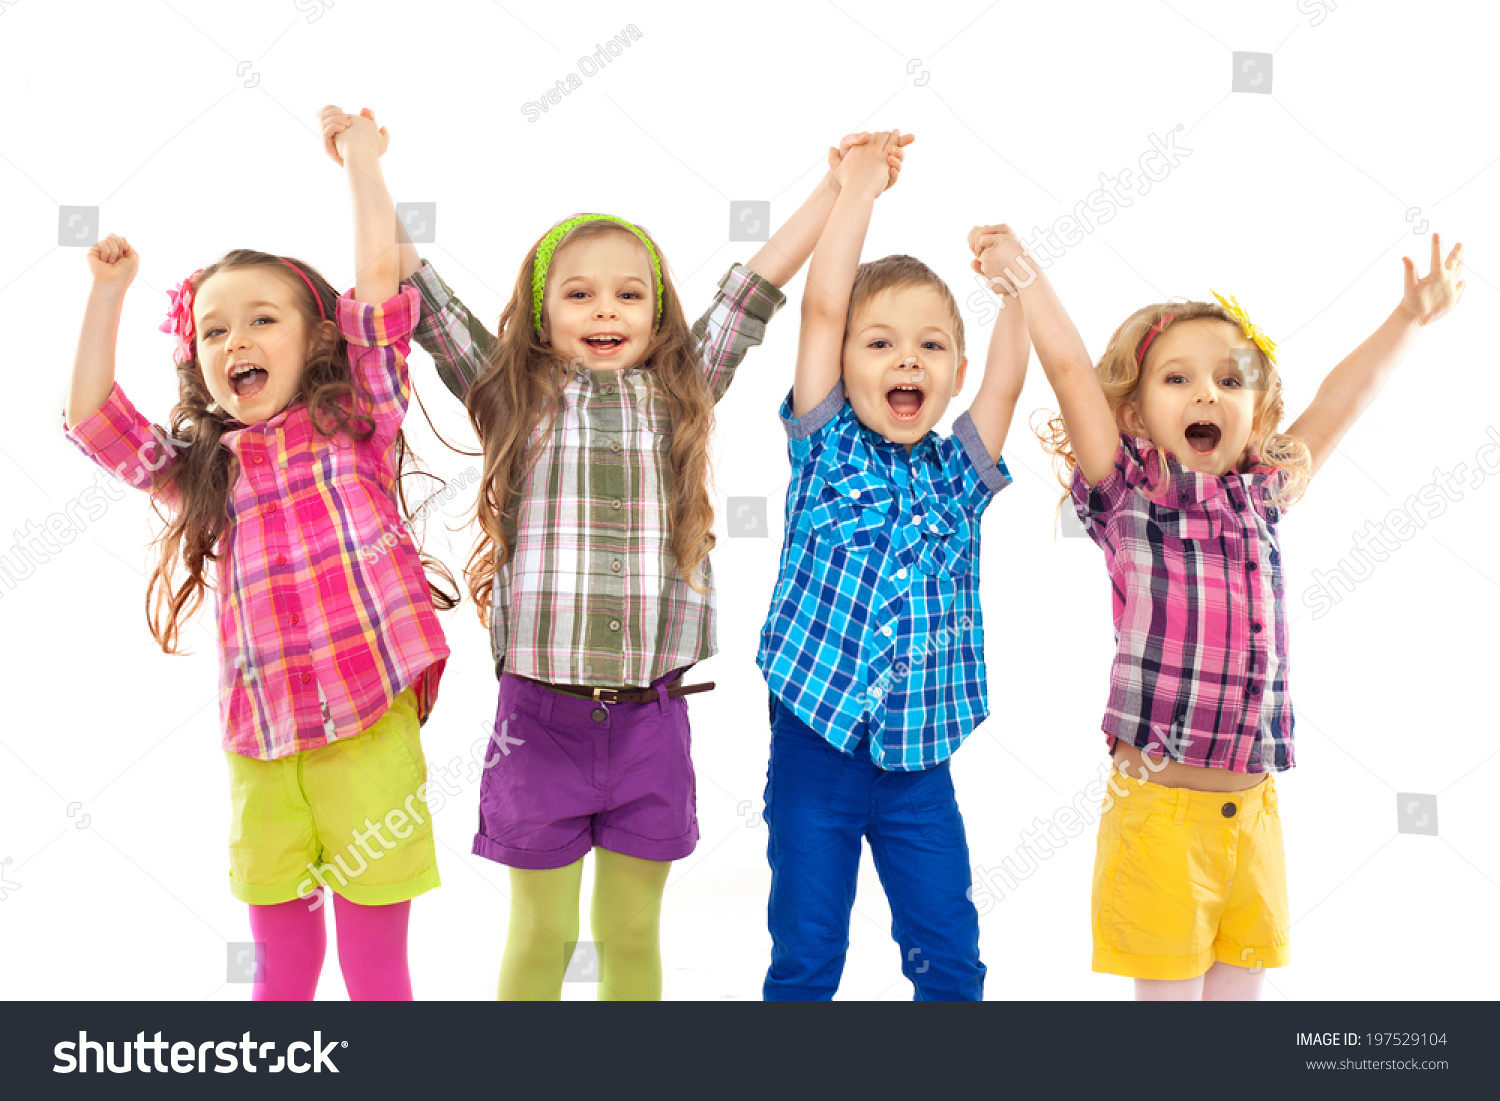 Cute happy kids are jumping together isolated white background